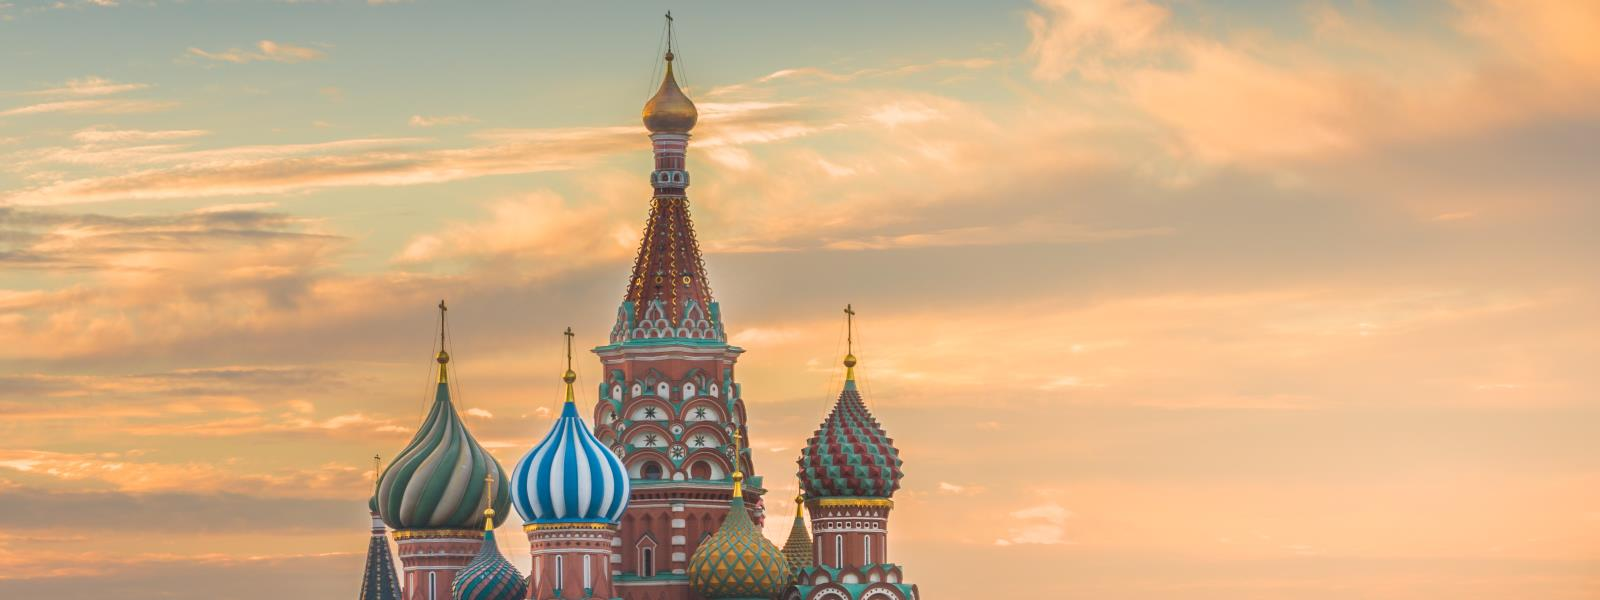 Transfer pricing court practices in Russia are evolving